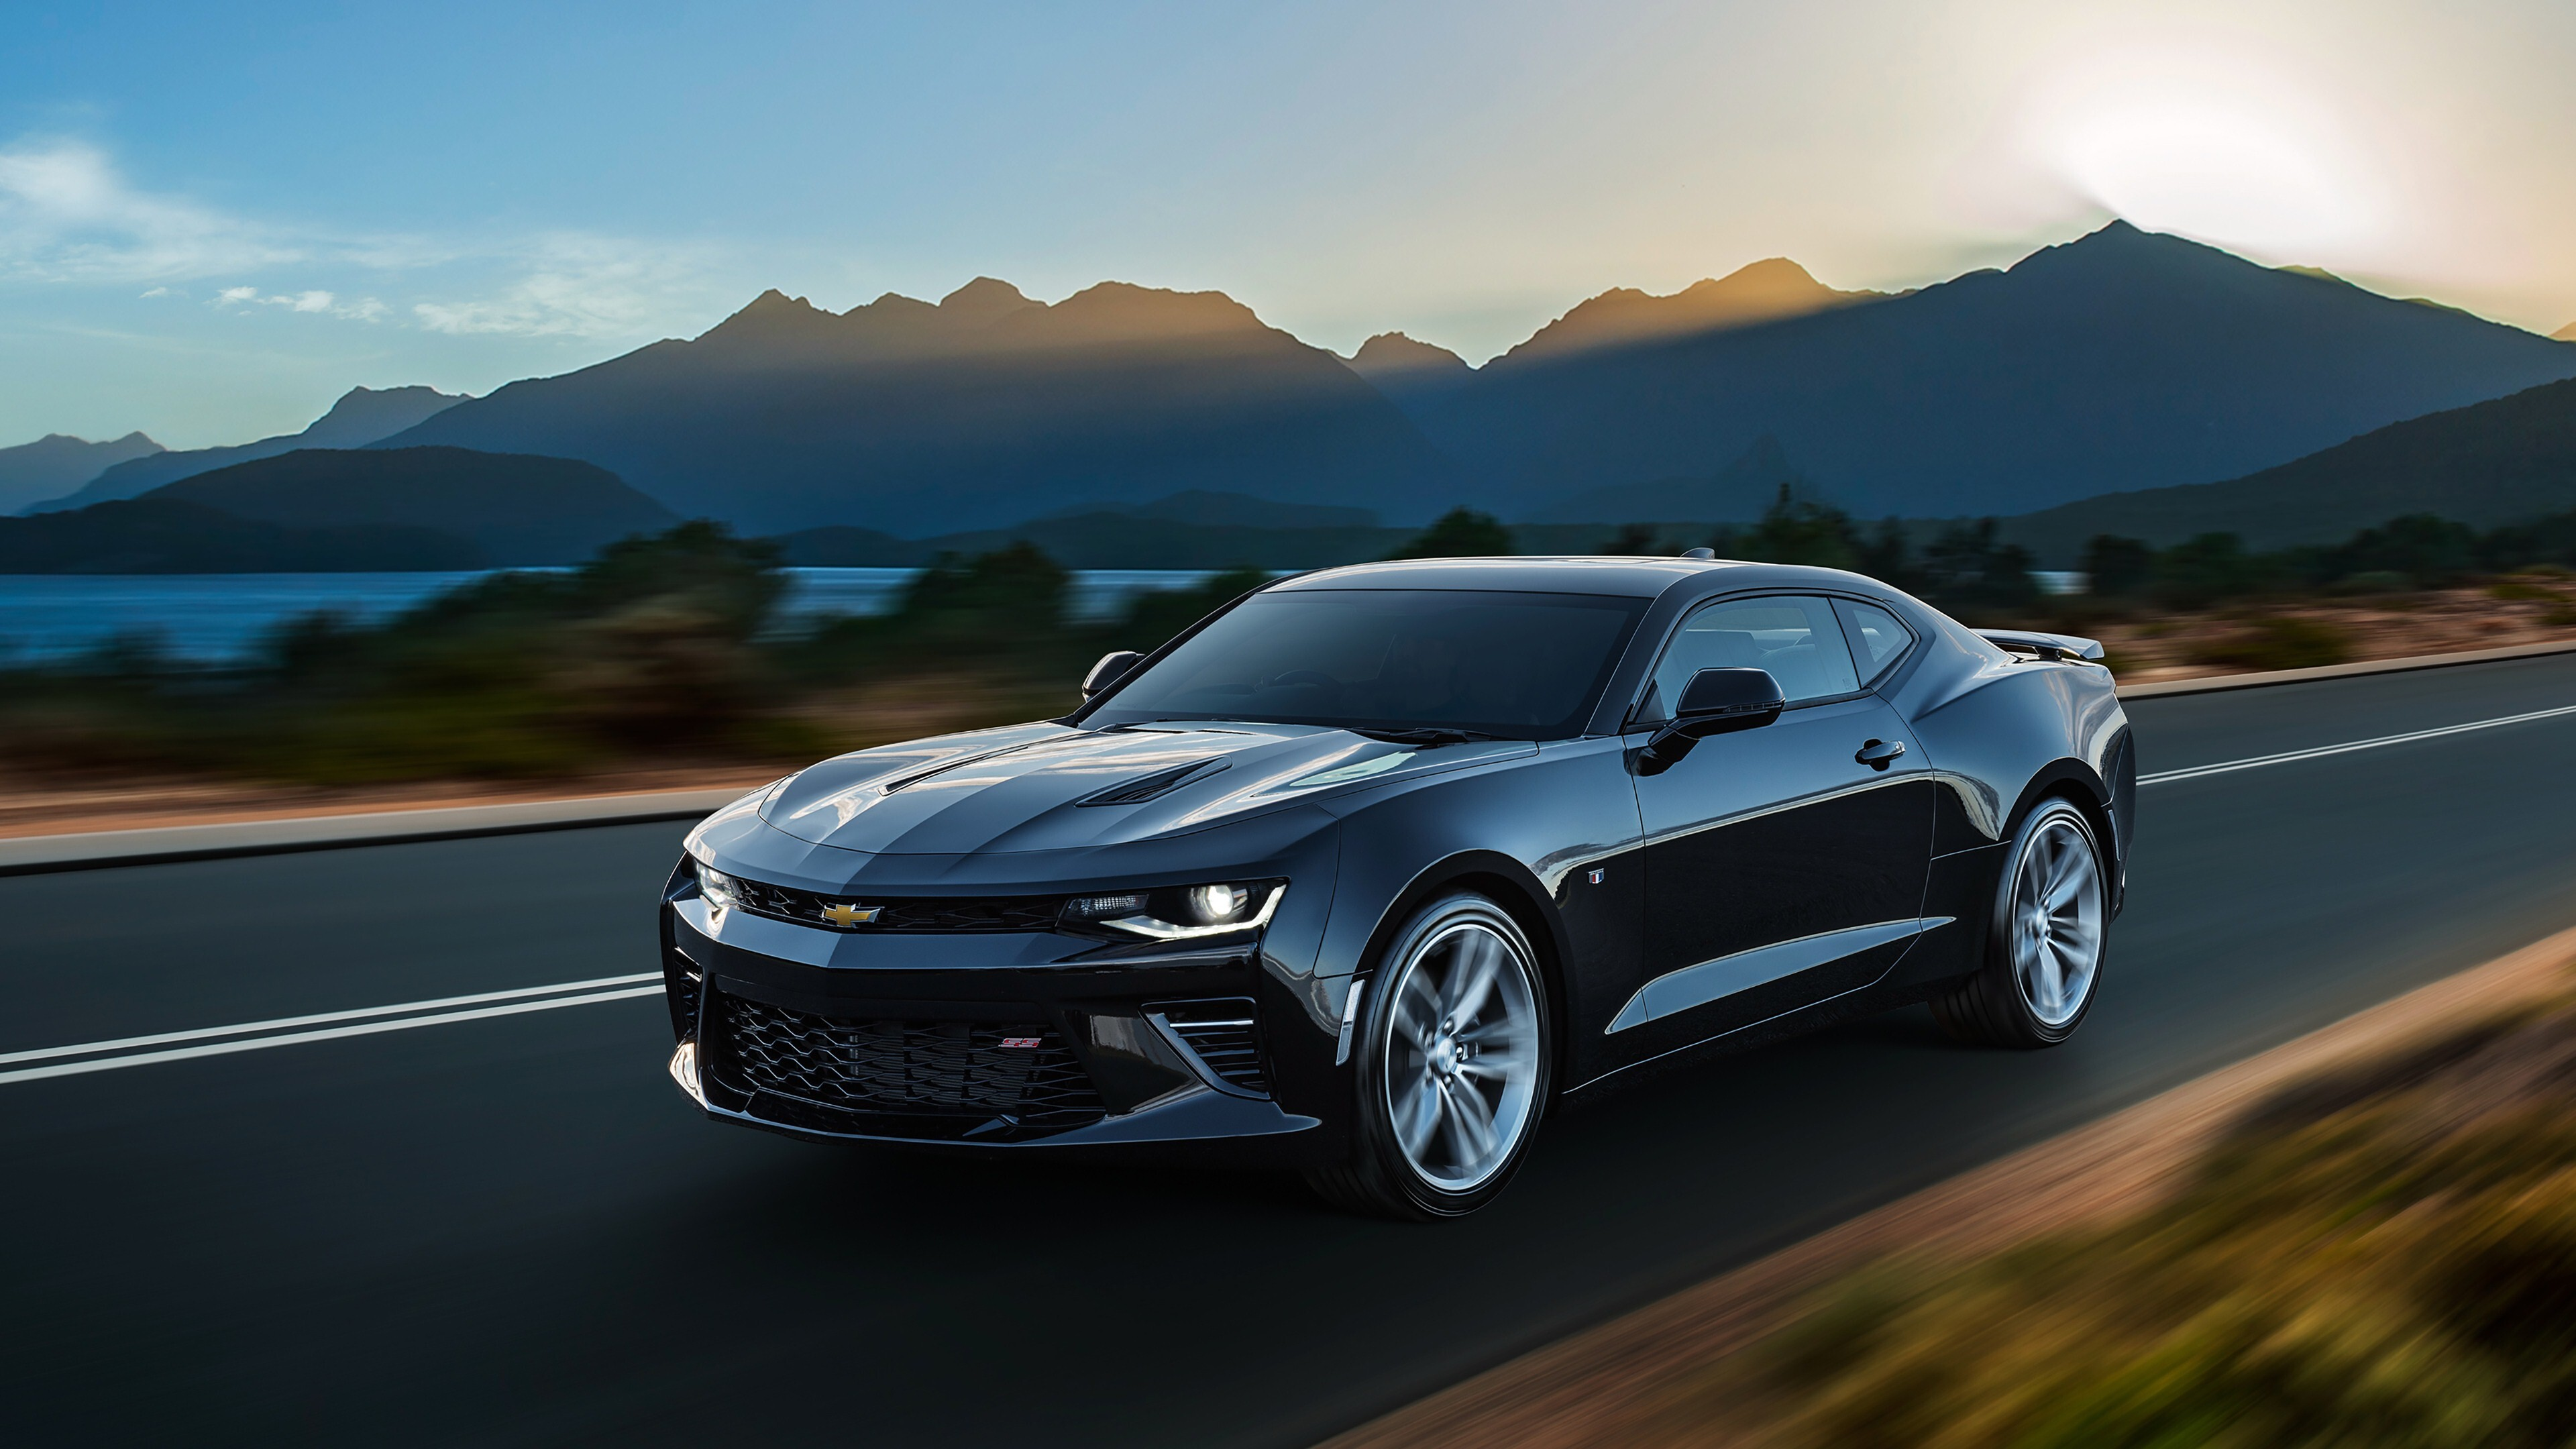 2018 New Launch Chevrolet Camaro SS Car | HD Wallpapers